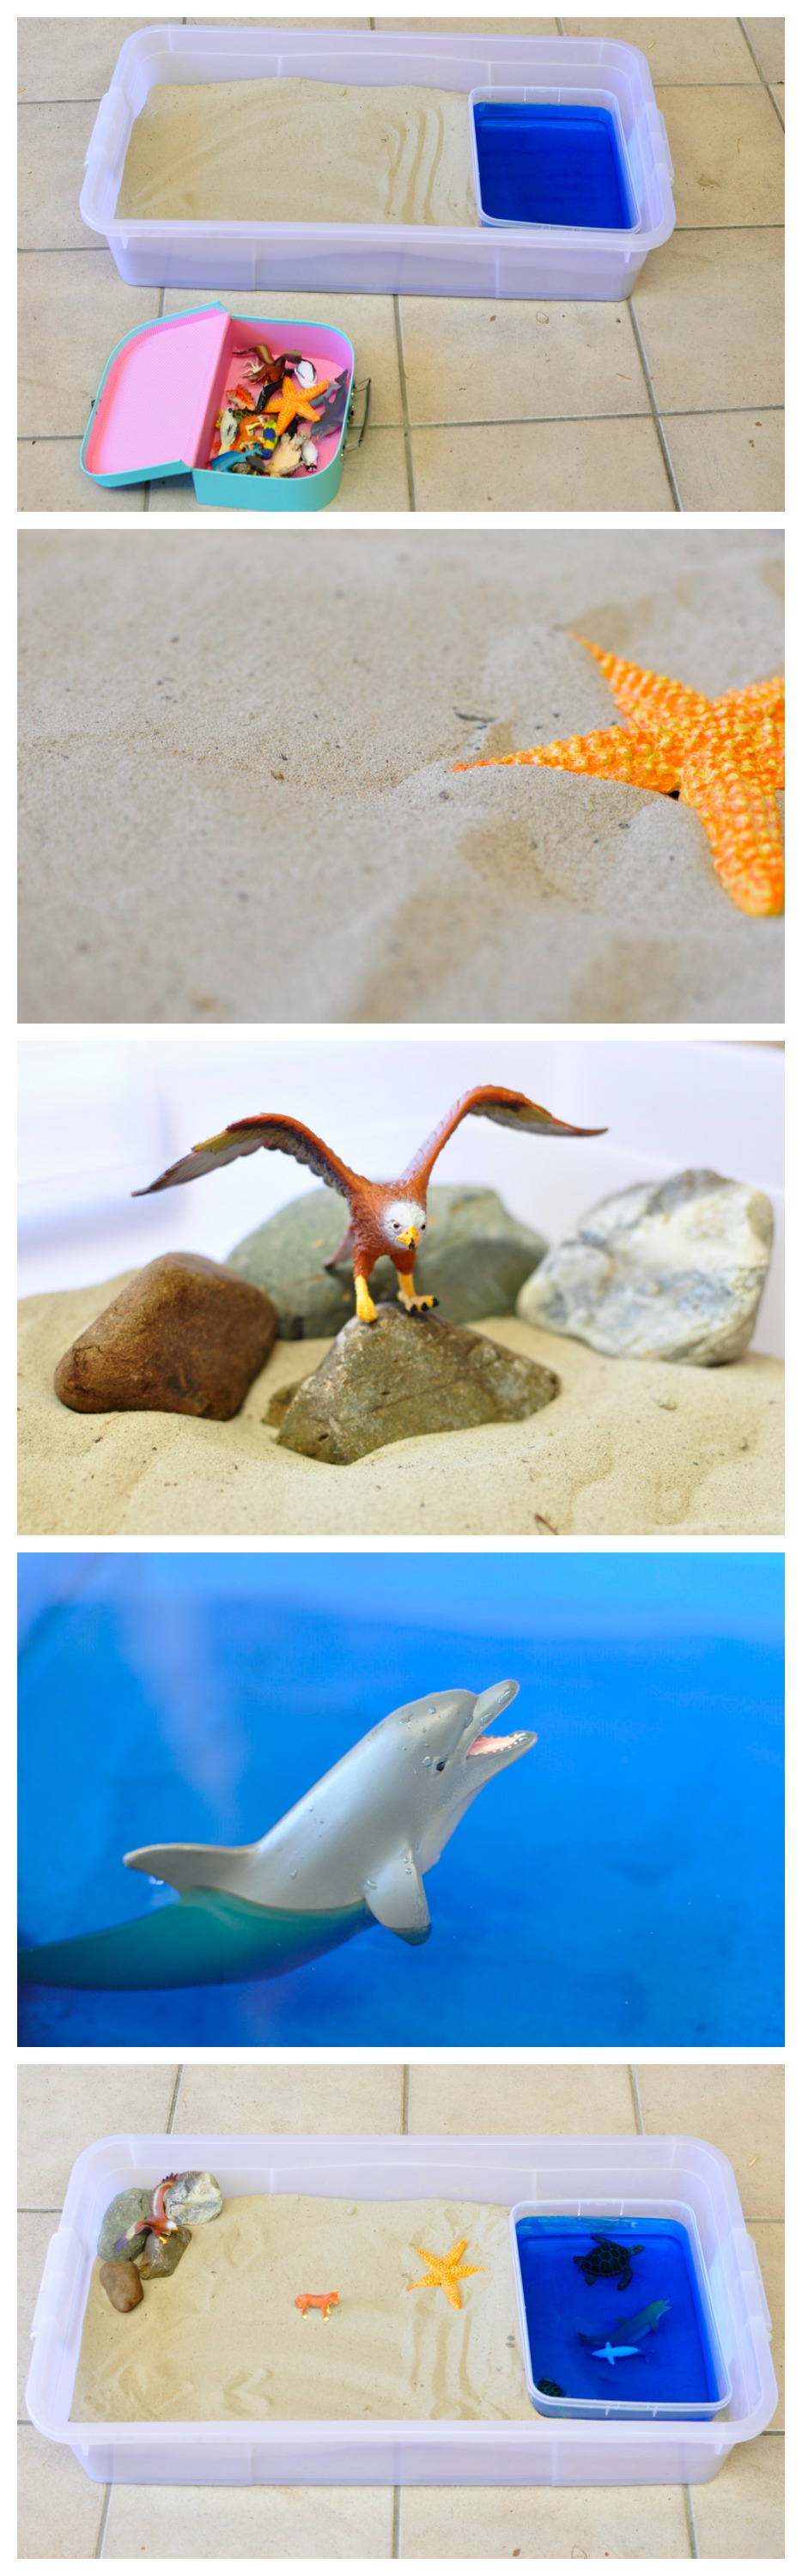 Imaginative Play: Sand & Sea Animals